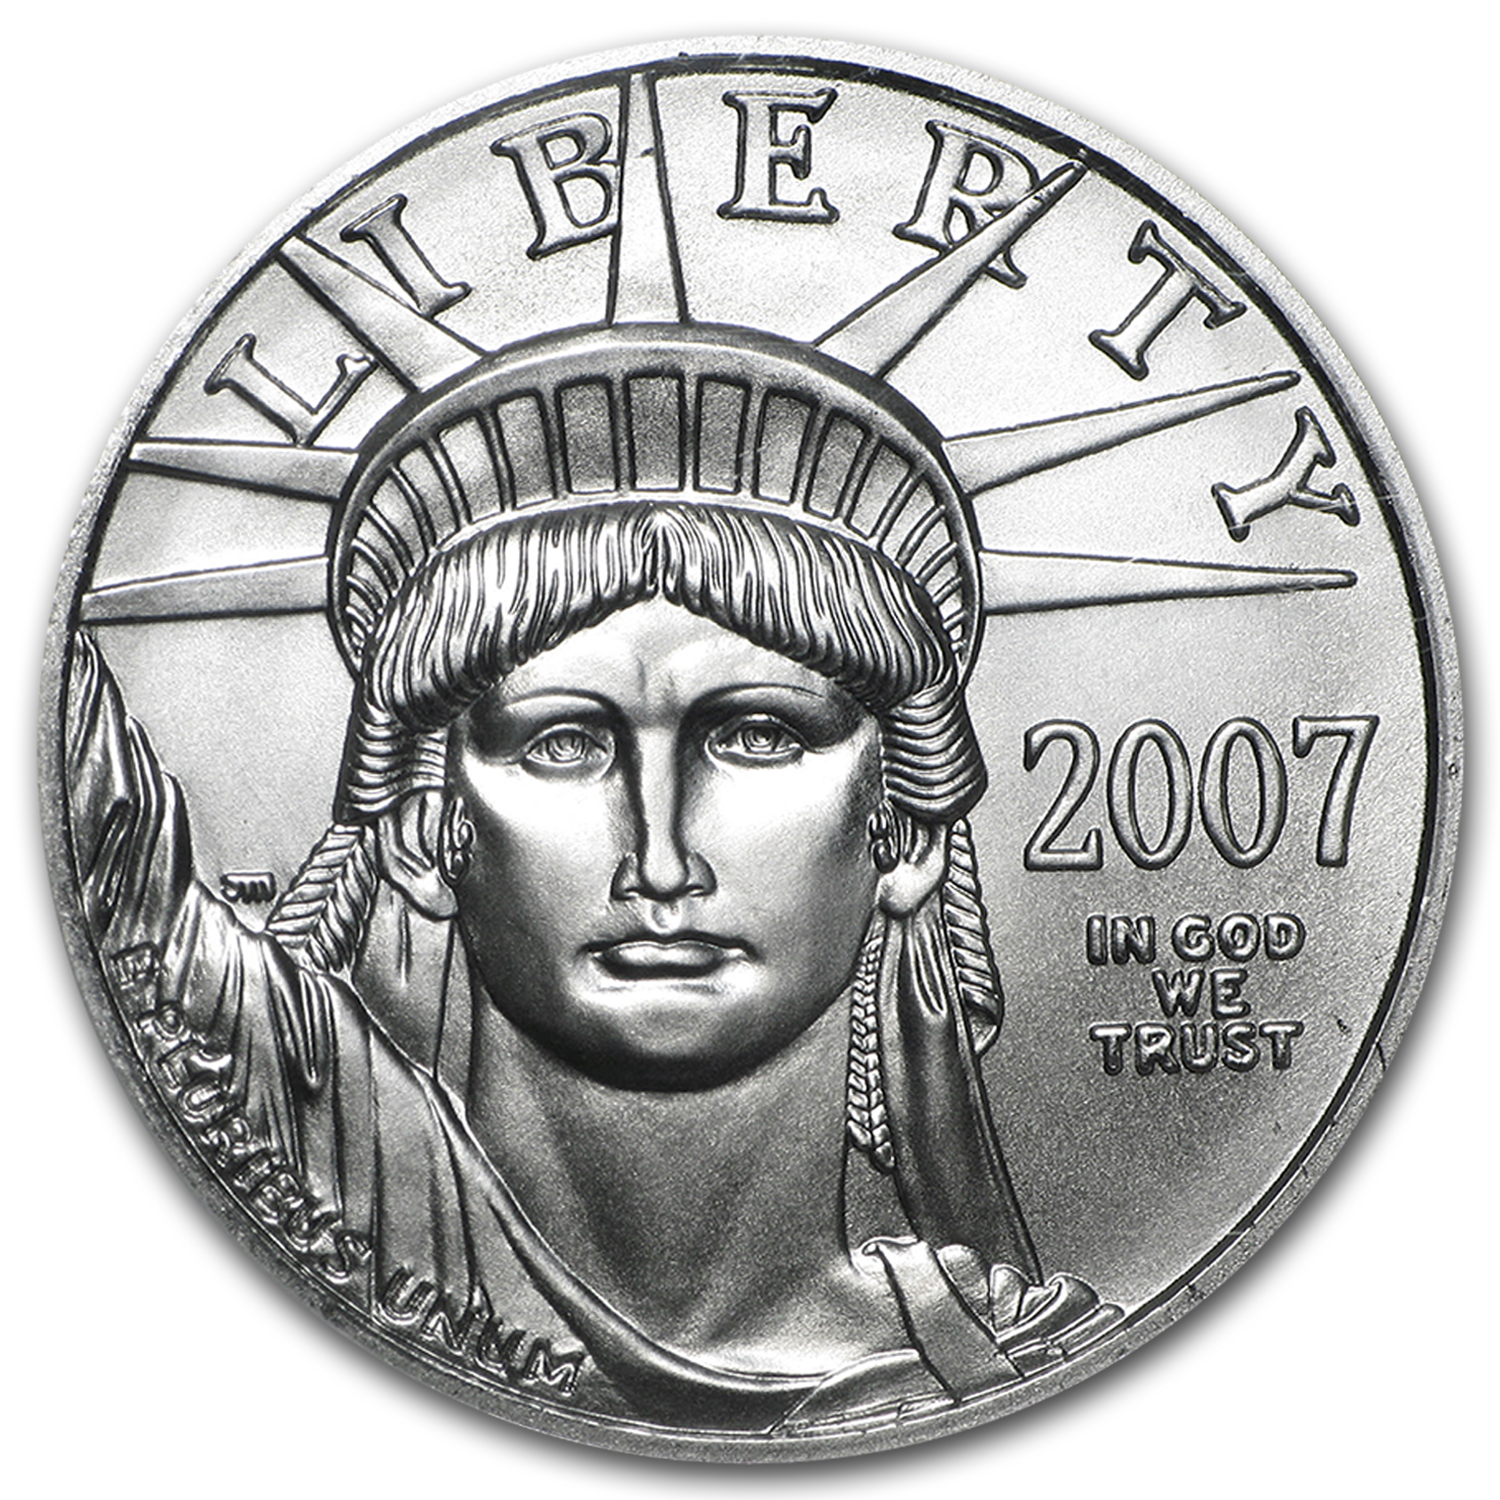 2007 1/2 oz Platinum American Eagle - Brilliant Uncirculated